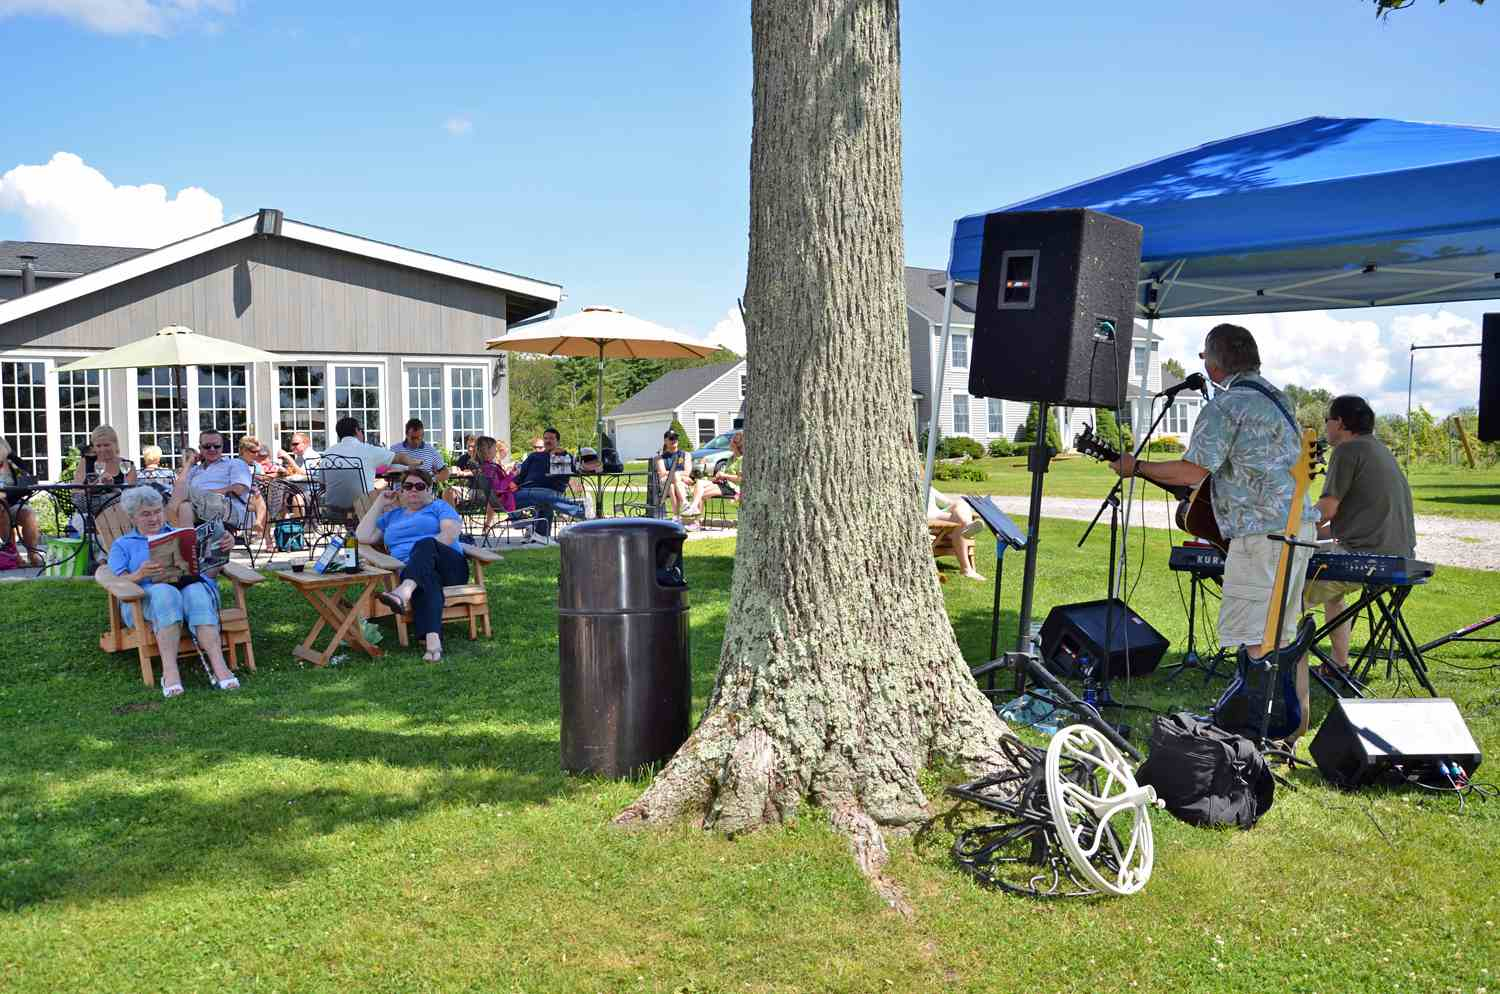 People relaxing while a band plays at Sunset Meadow Vineyard, CT